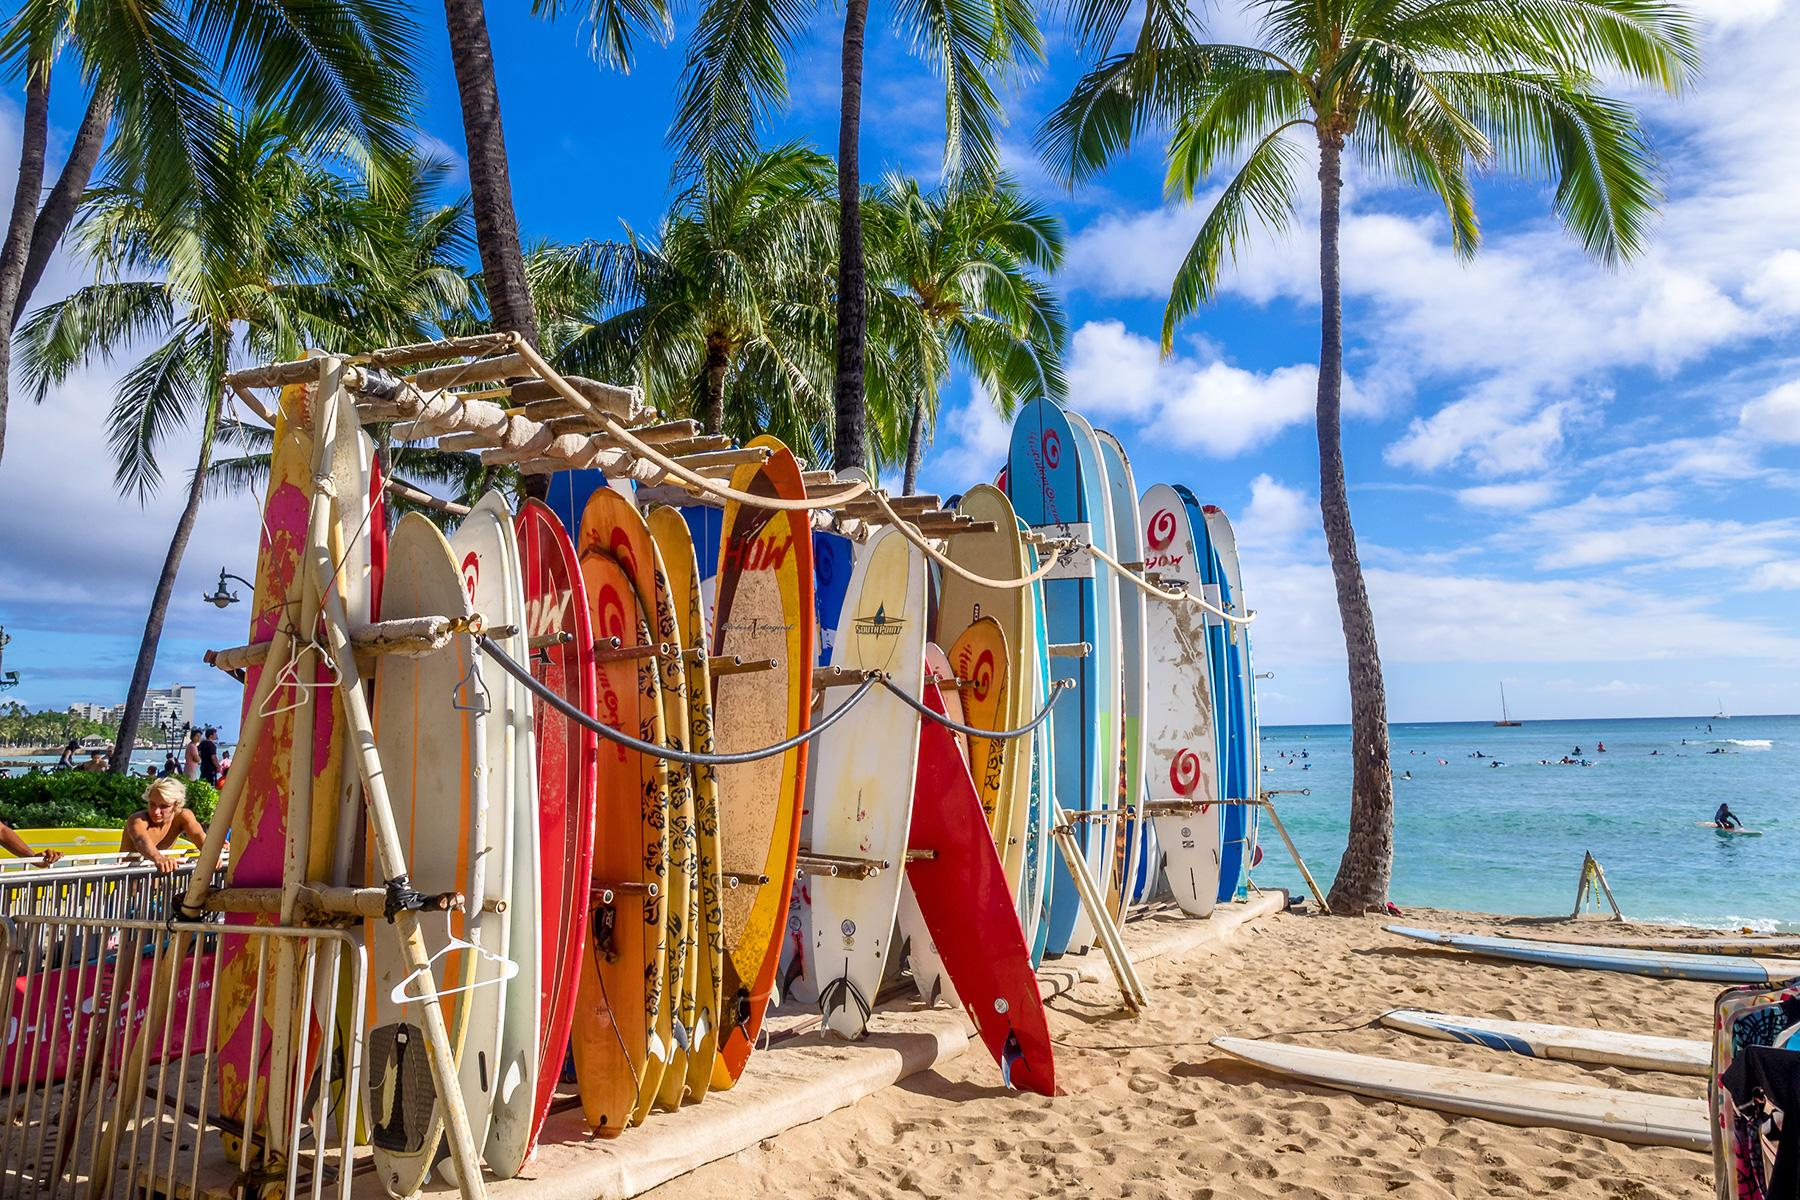 07_15BeachDestinationsforWinterGetaway__Oahu,Hawaii_Honolulu_shutterstock_469698125